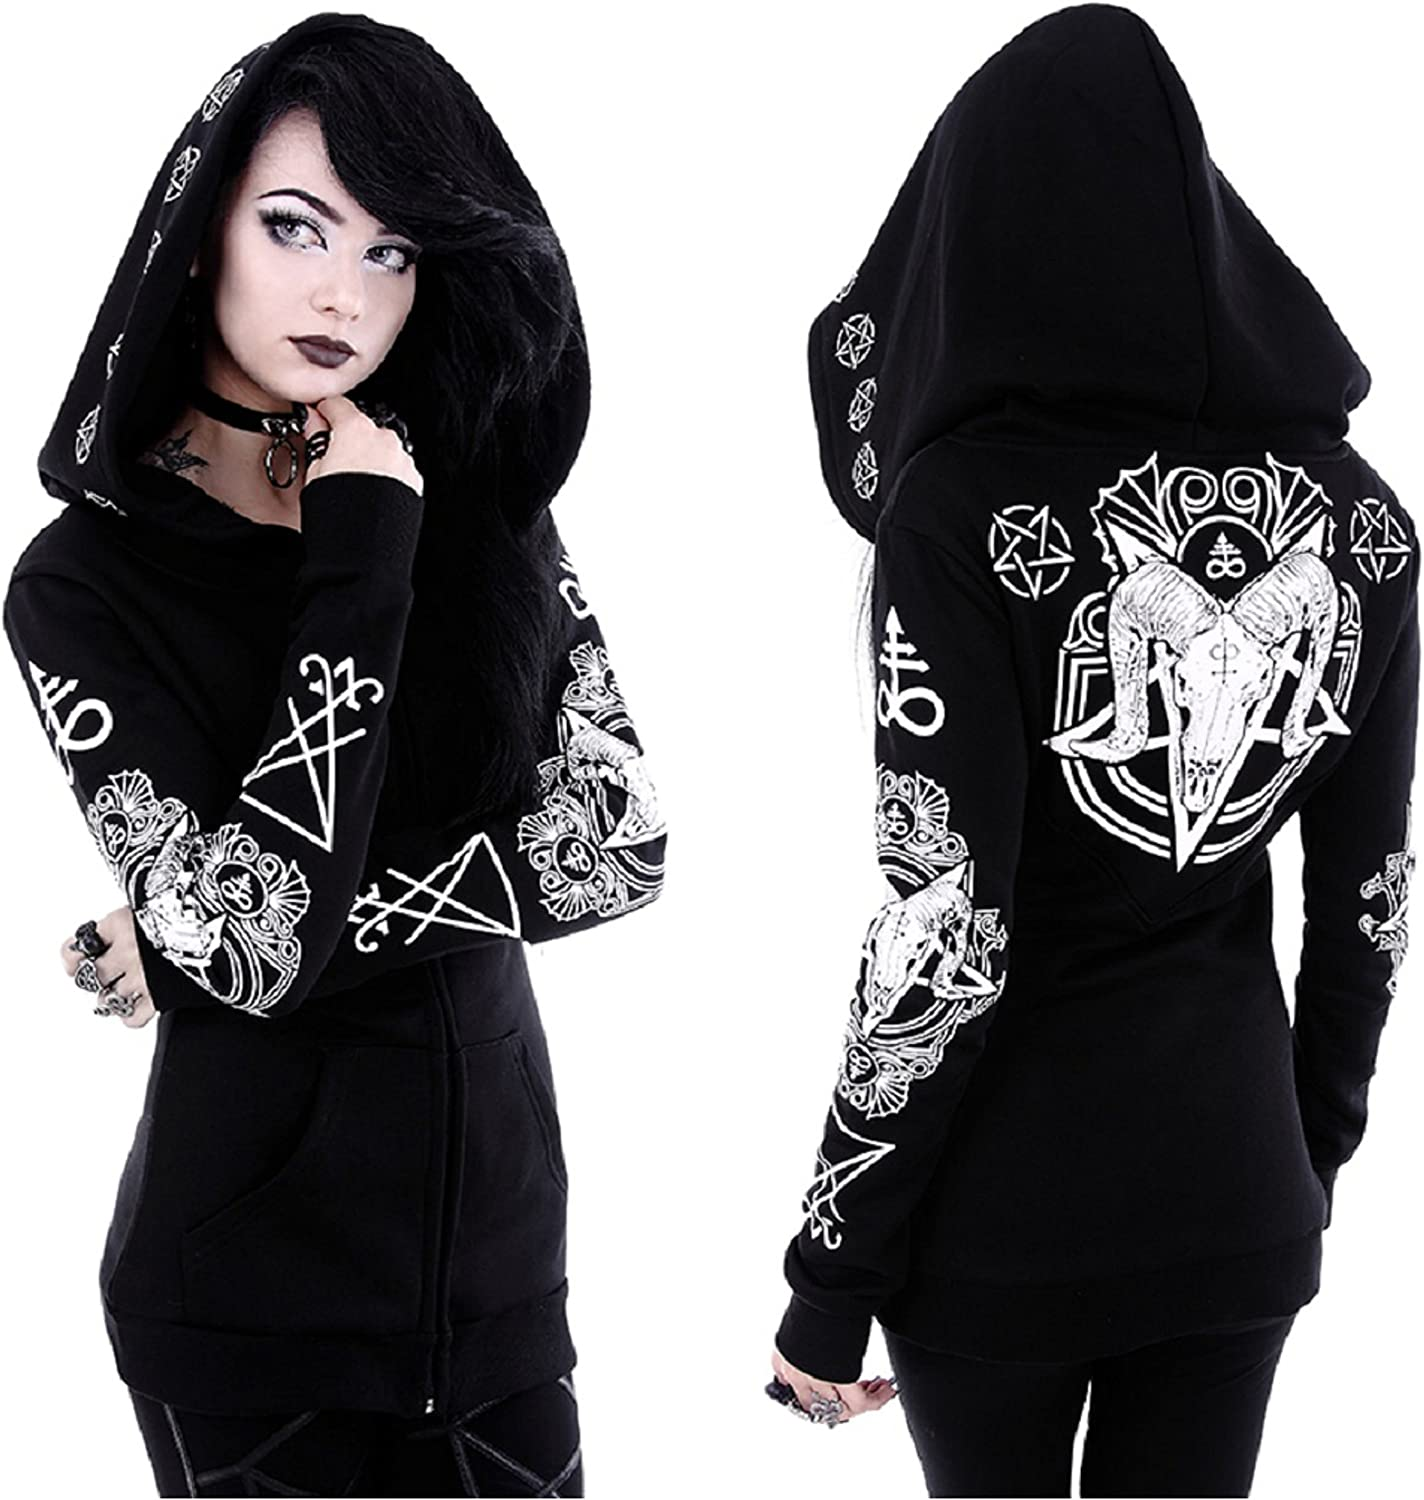 Long Beach Mall Restyle Occult Superlatite Ram Skull Pentacle Goth Punk Nugoth Witchc Ritual